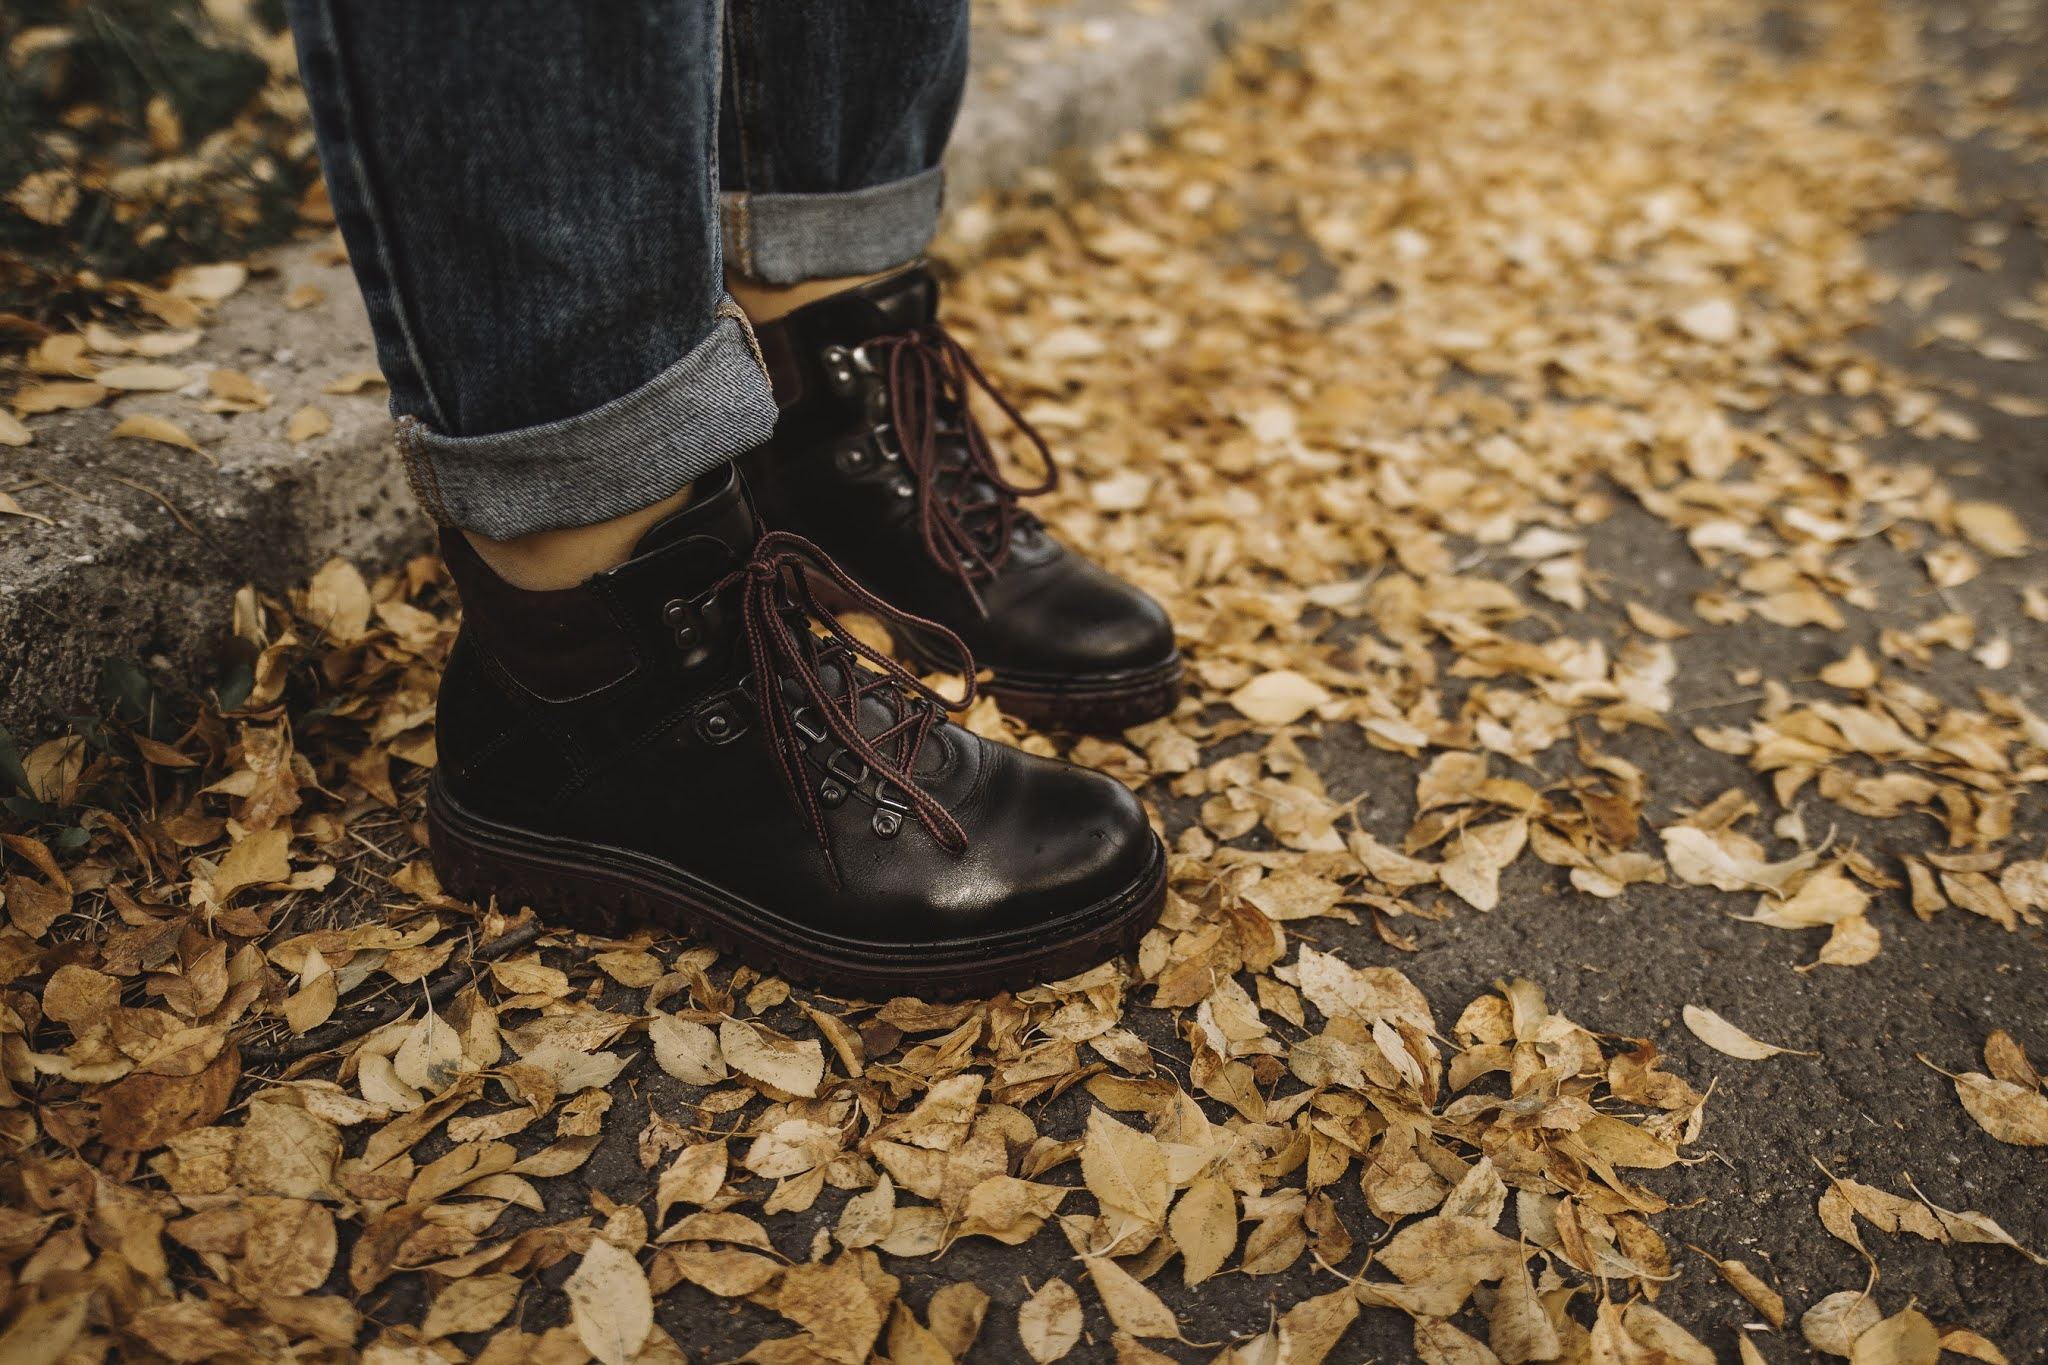 fall bootie, a close up picture